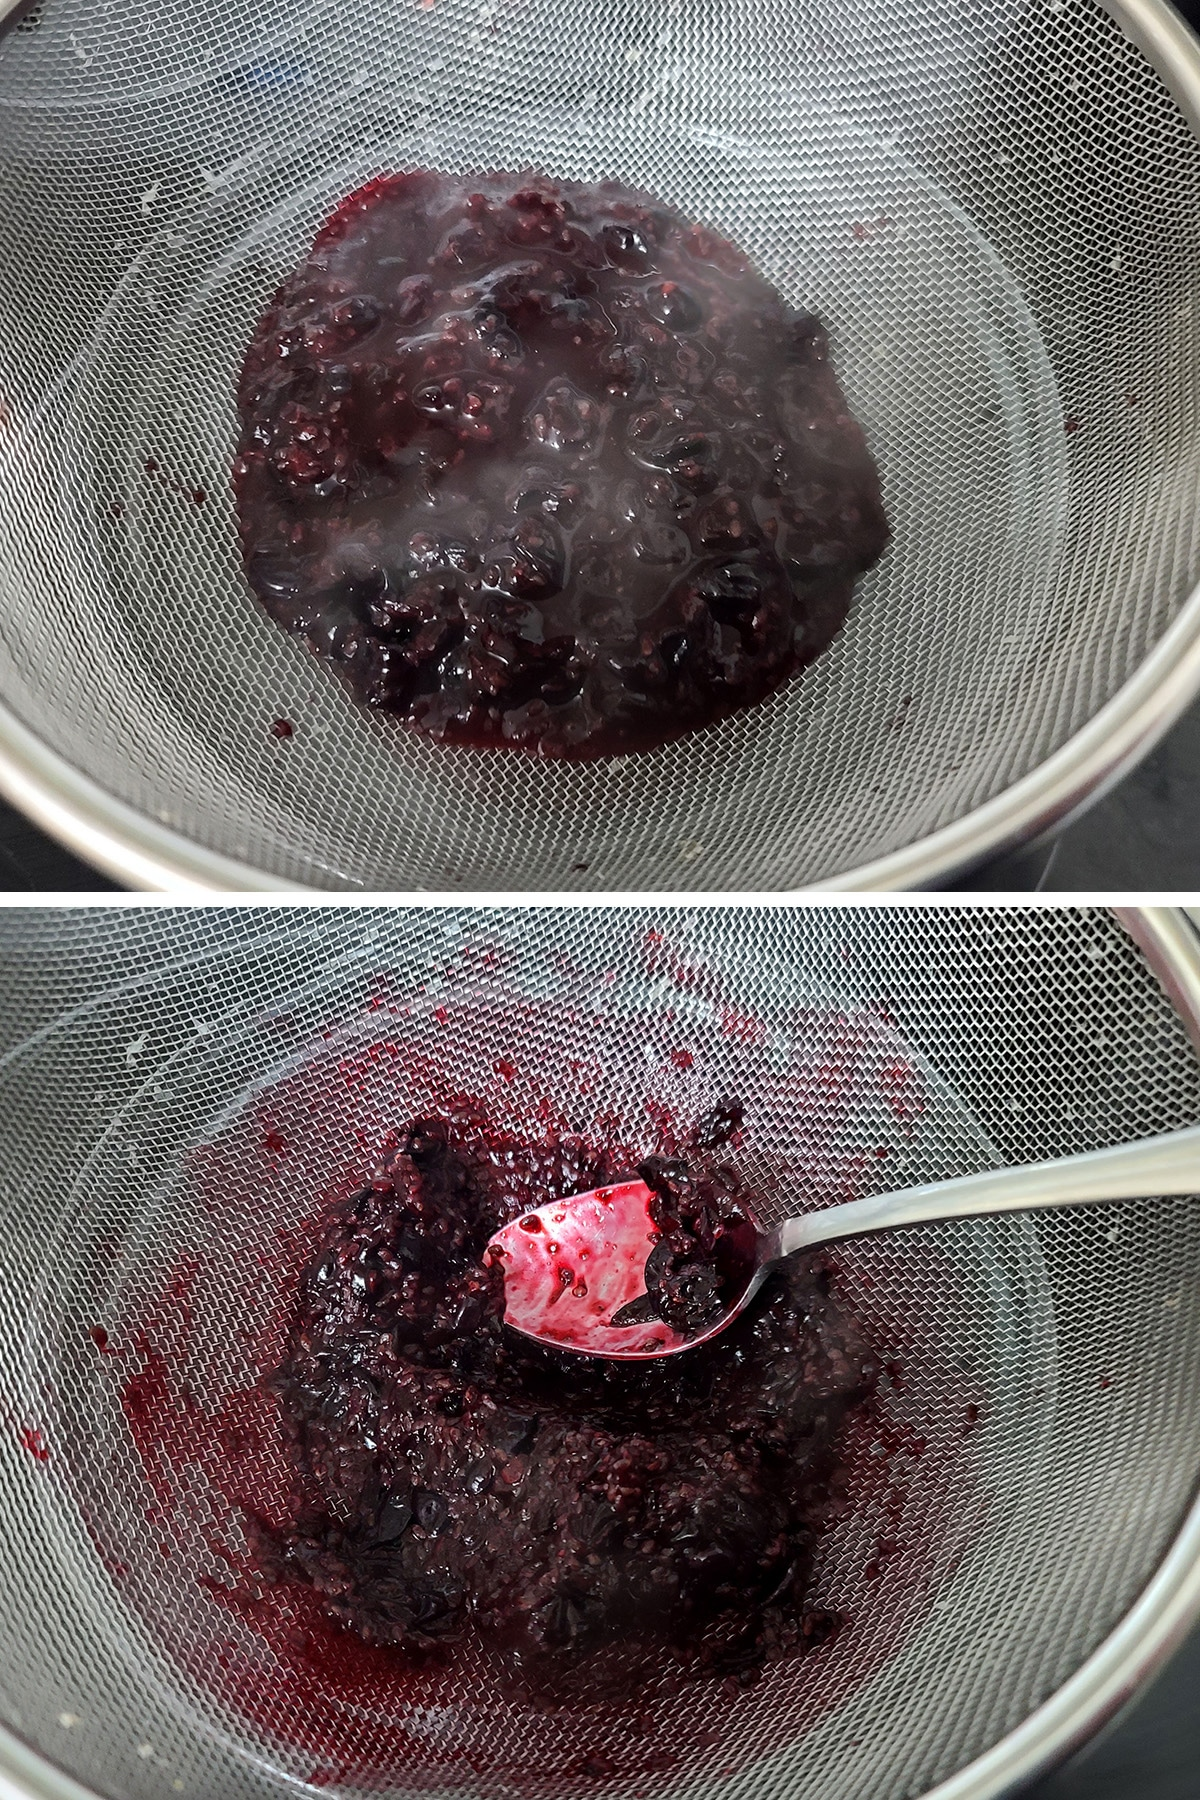 Blackcurrant pulp being pressed through a wire strainer.